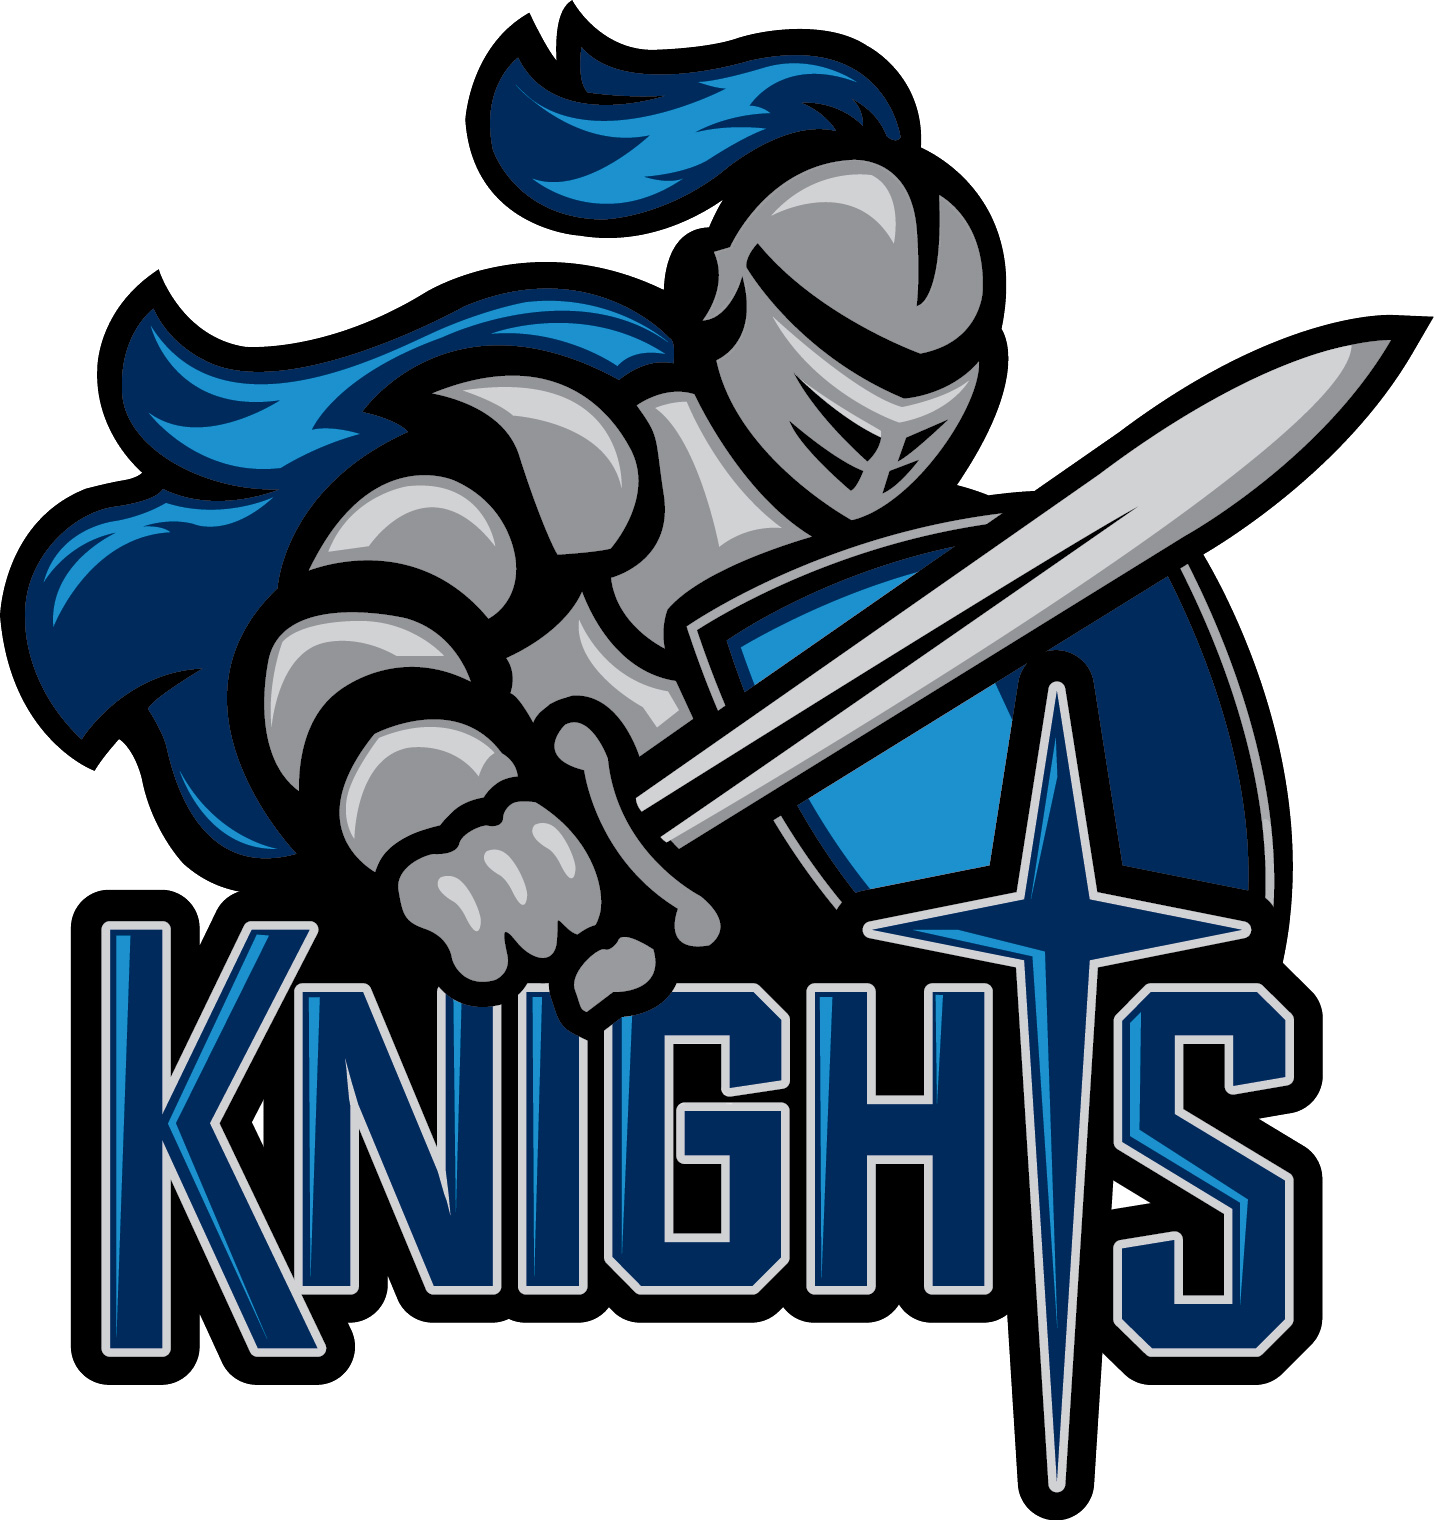 kinghts logo sports siouxlandmatters man cavesports